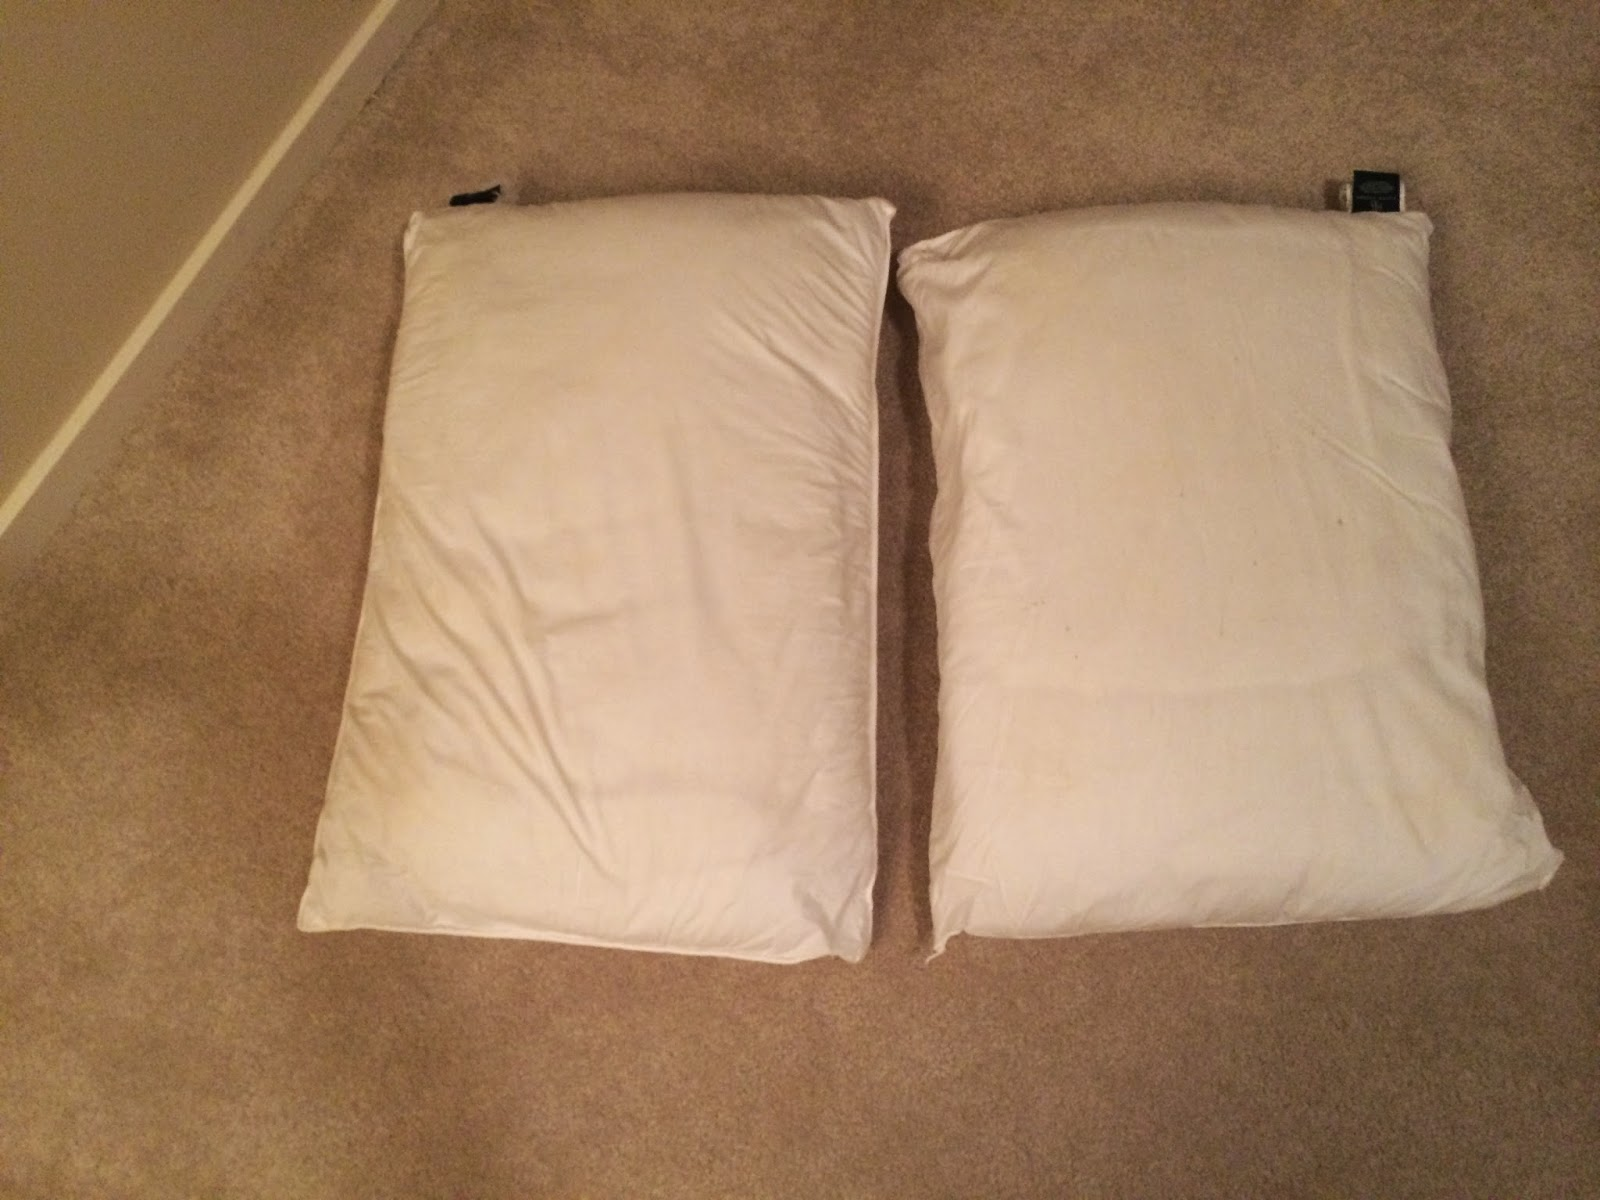 Pintest 365 day 147 how to wash whiten yellowed pillows fail - Whiten yellowed pillows ...